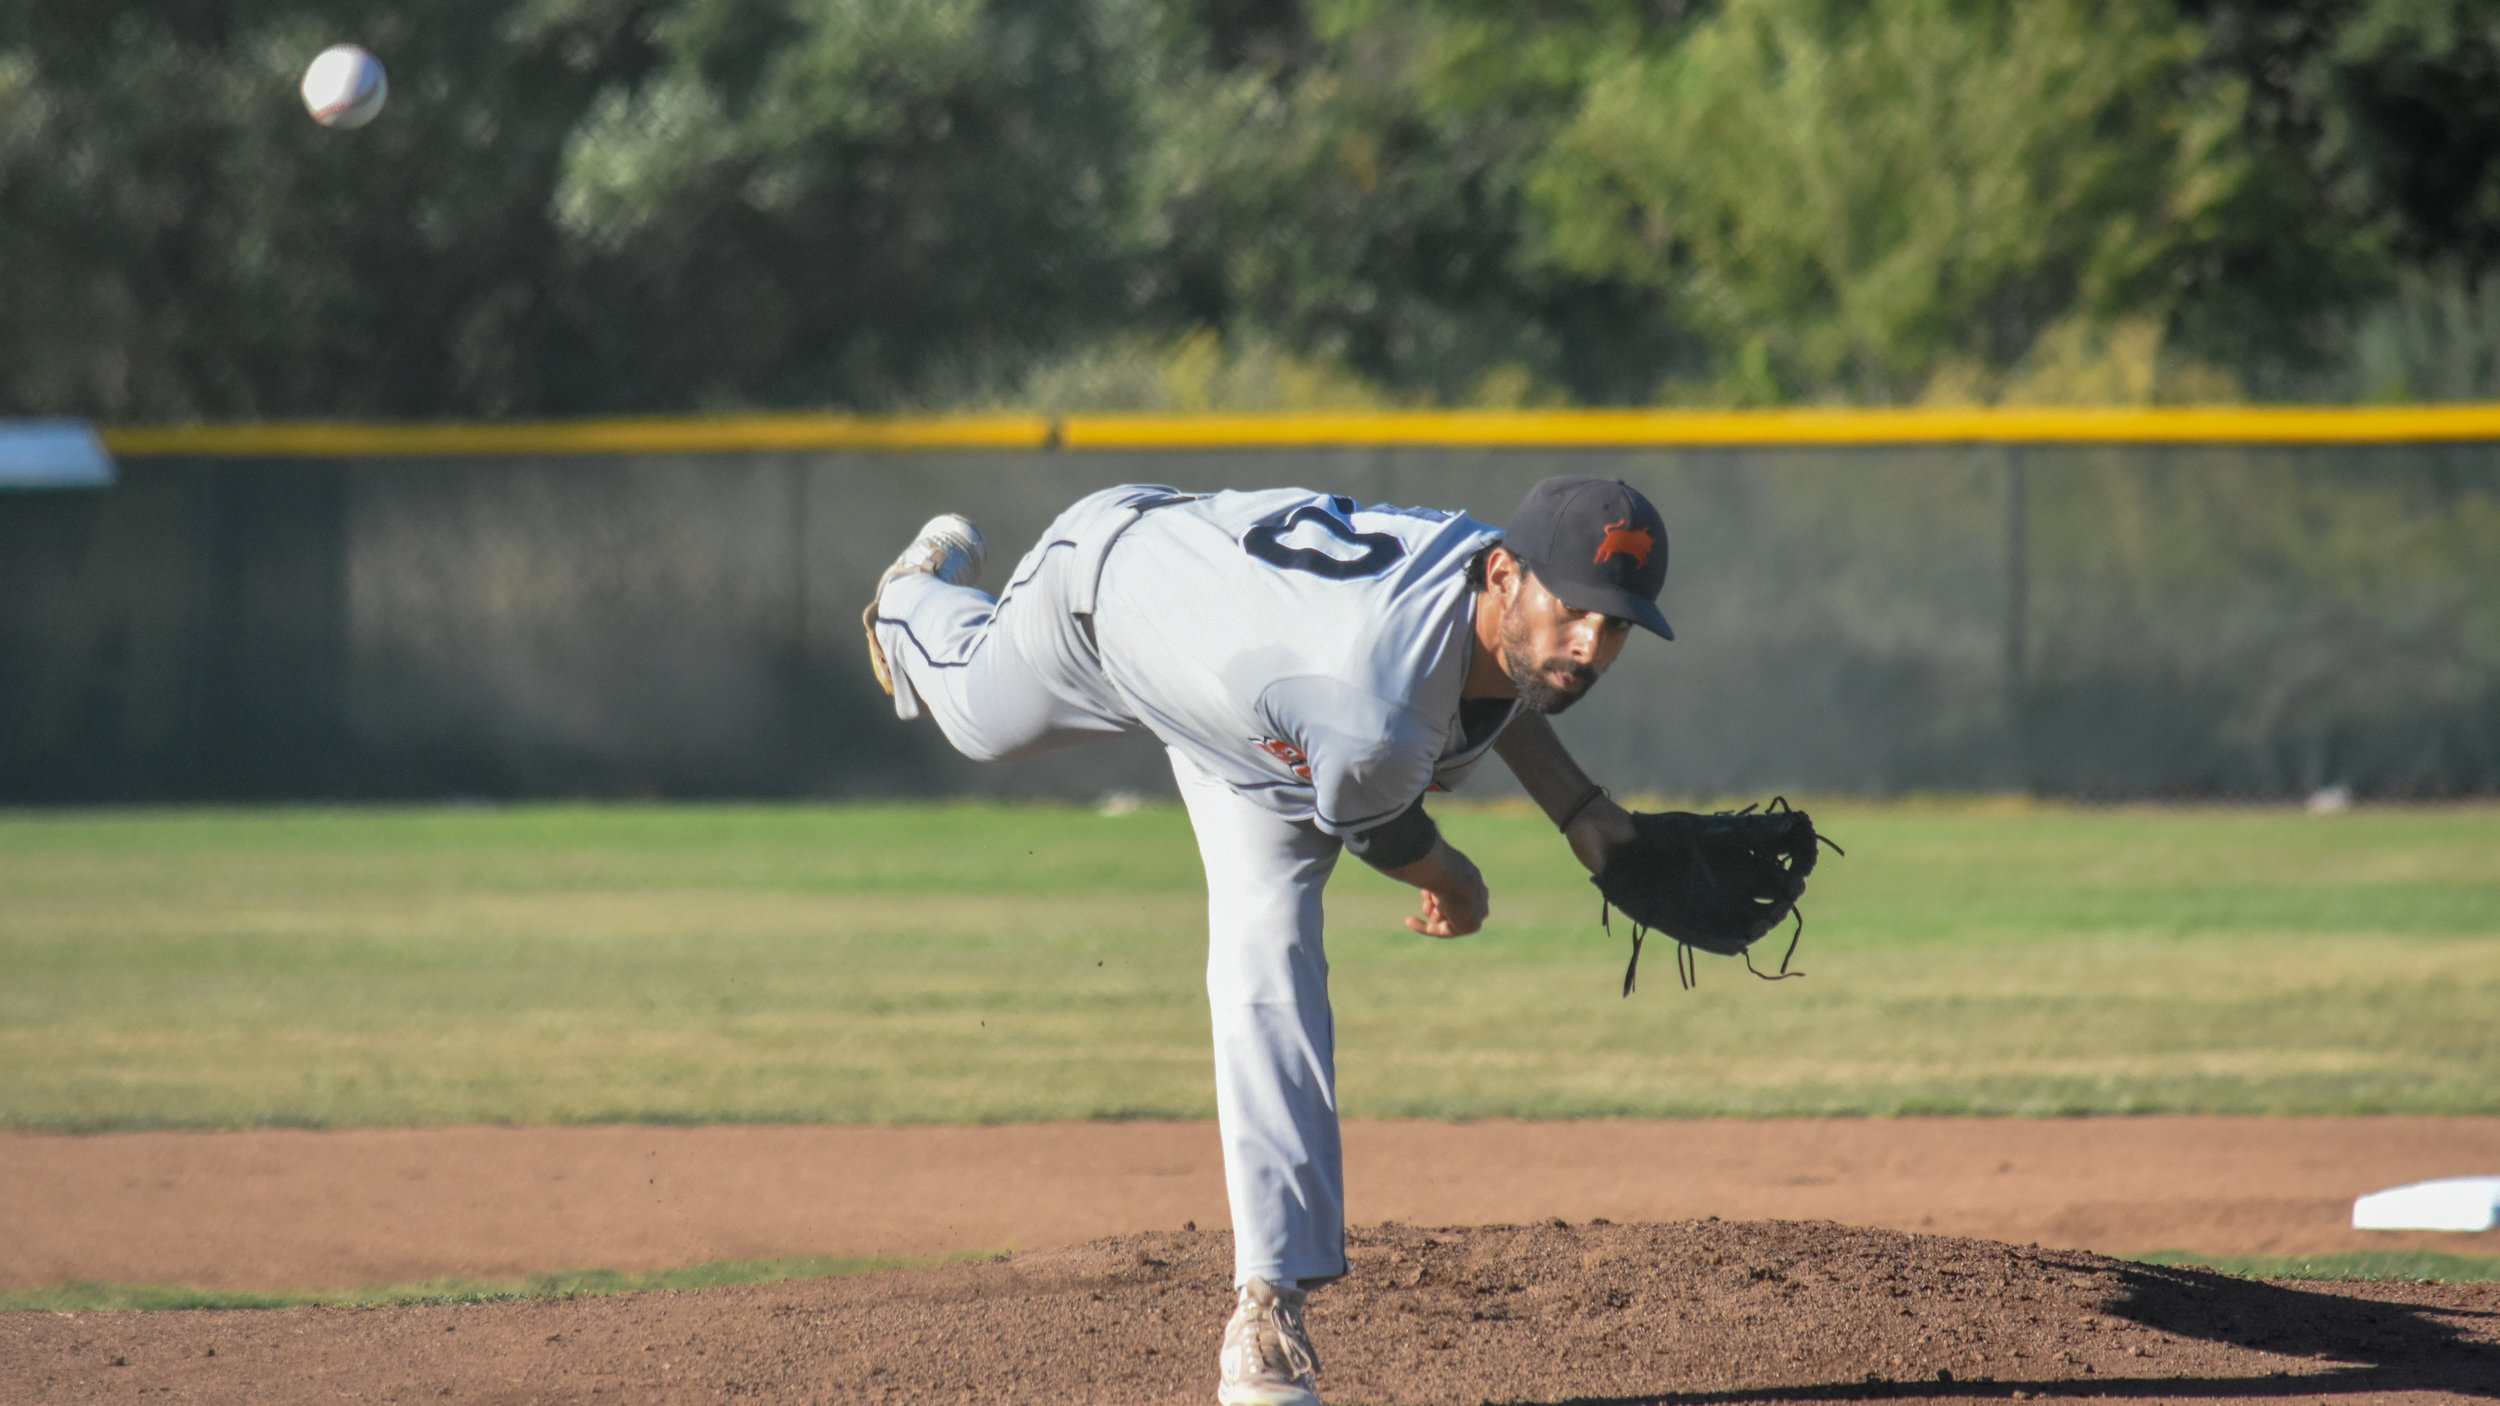 Vijay Patel delivers a pitch in the Stompers' game against the Napa Silverados, July 11, 2018 (James W. Toy III / Sonoma Stompers)